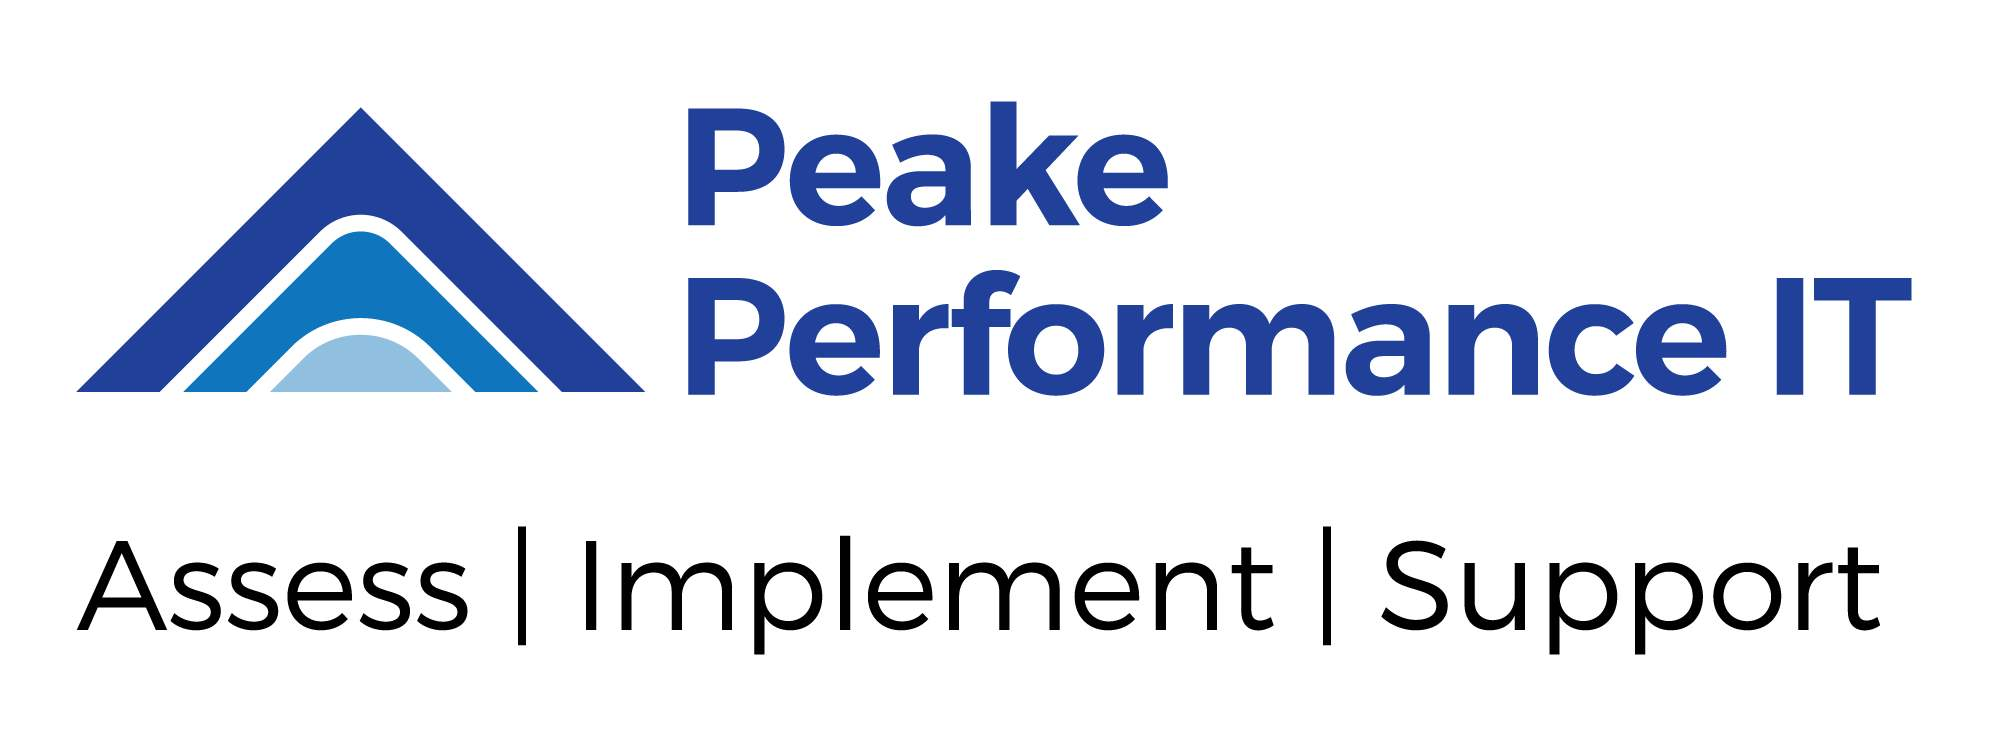 Peake Performance IT Corp. logo